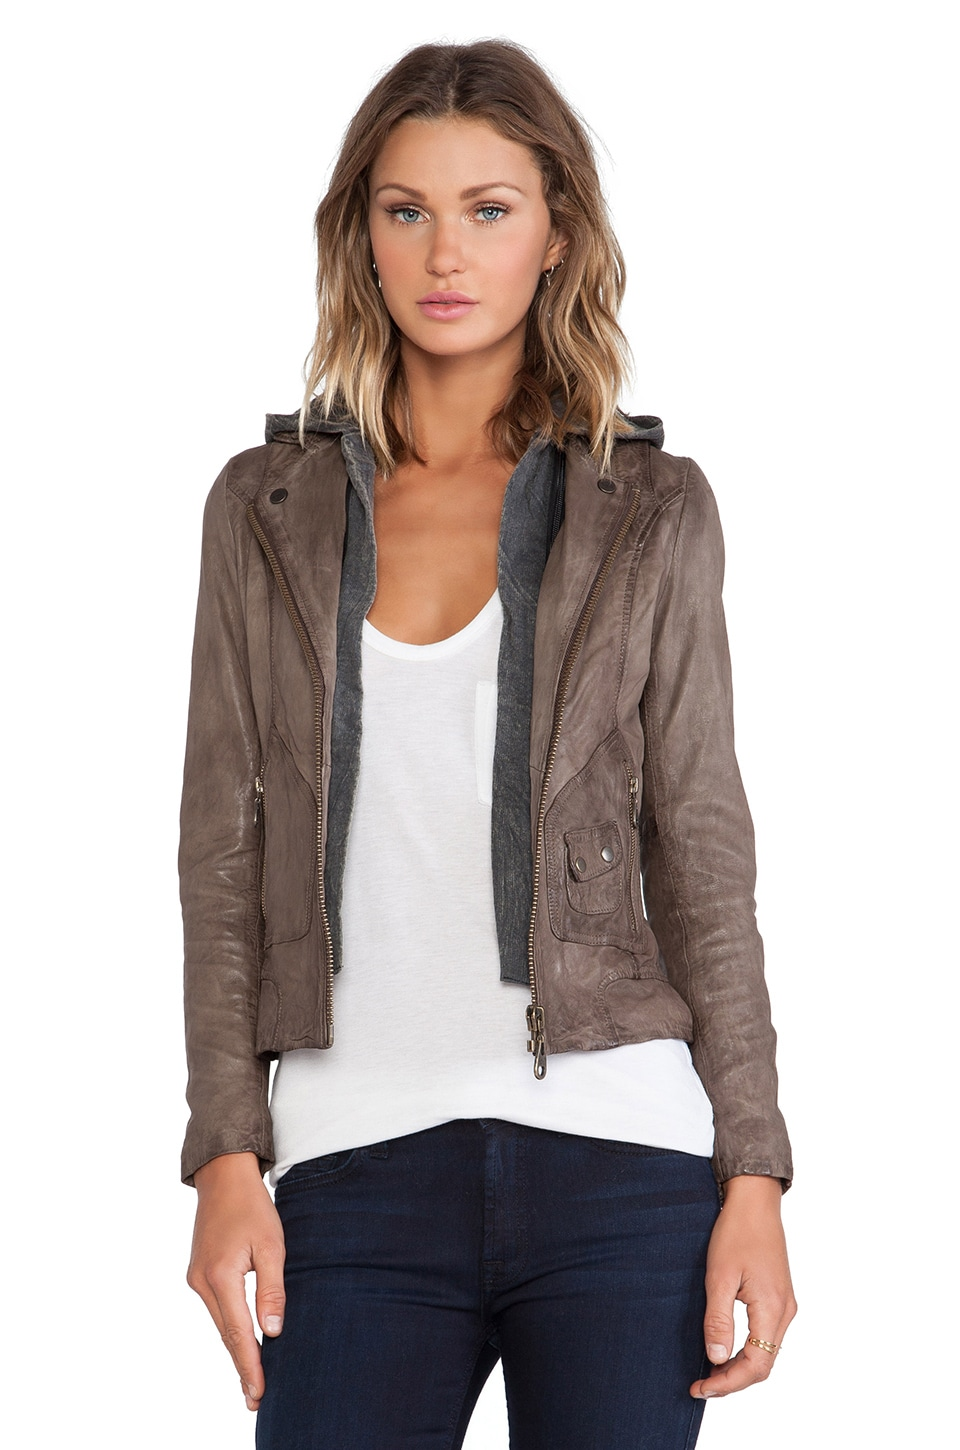 DOMA Hoodie Leather Jacket in Dark Cocoa